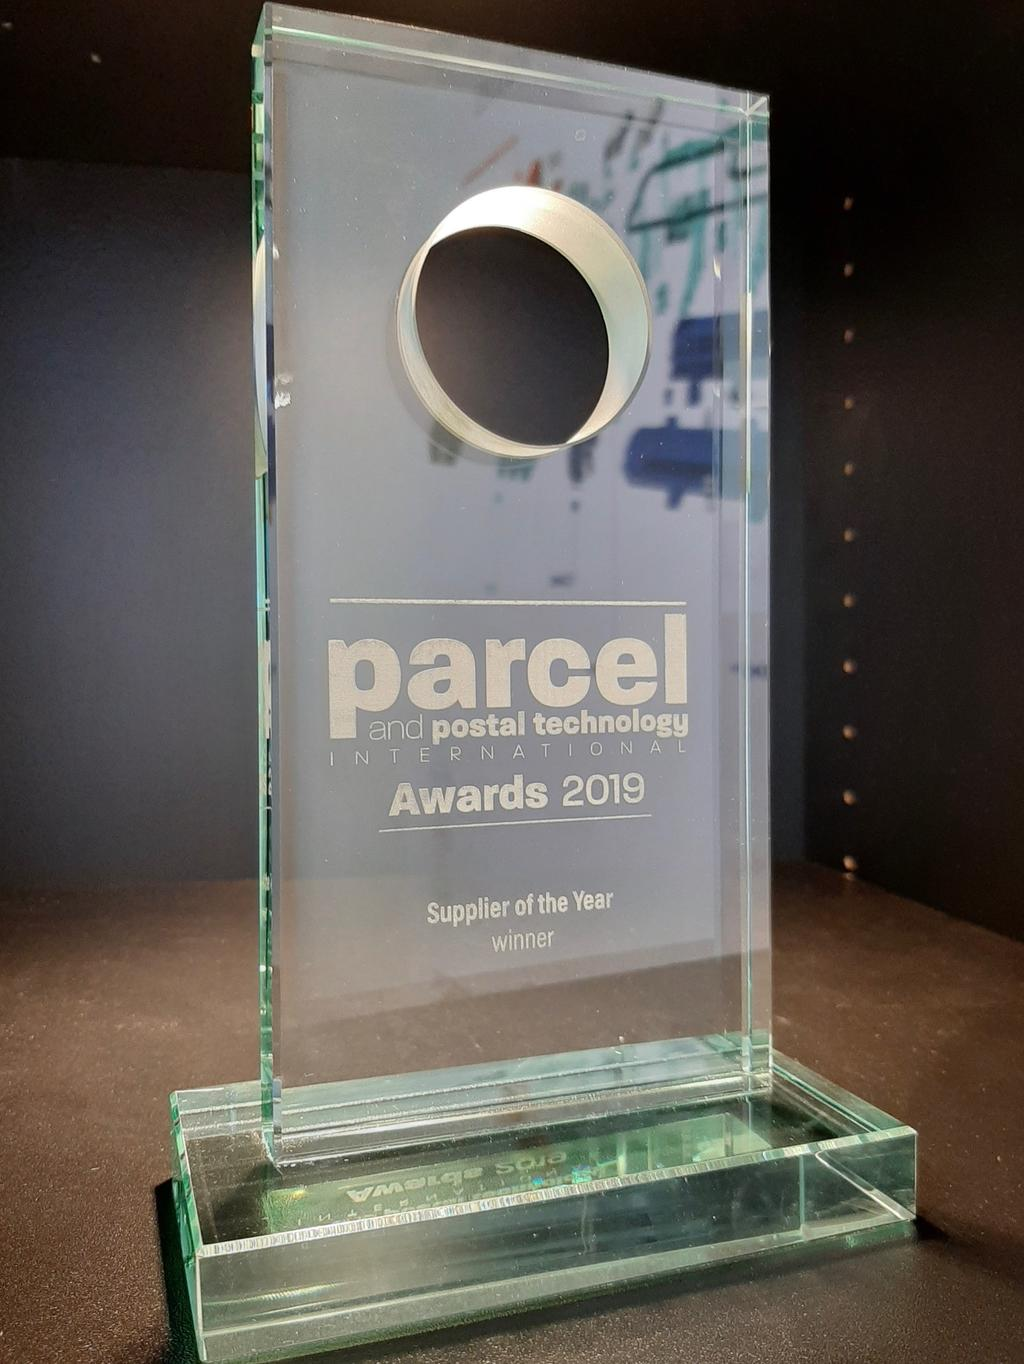 Parcel and postal technology - Awards Supplier of the year